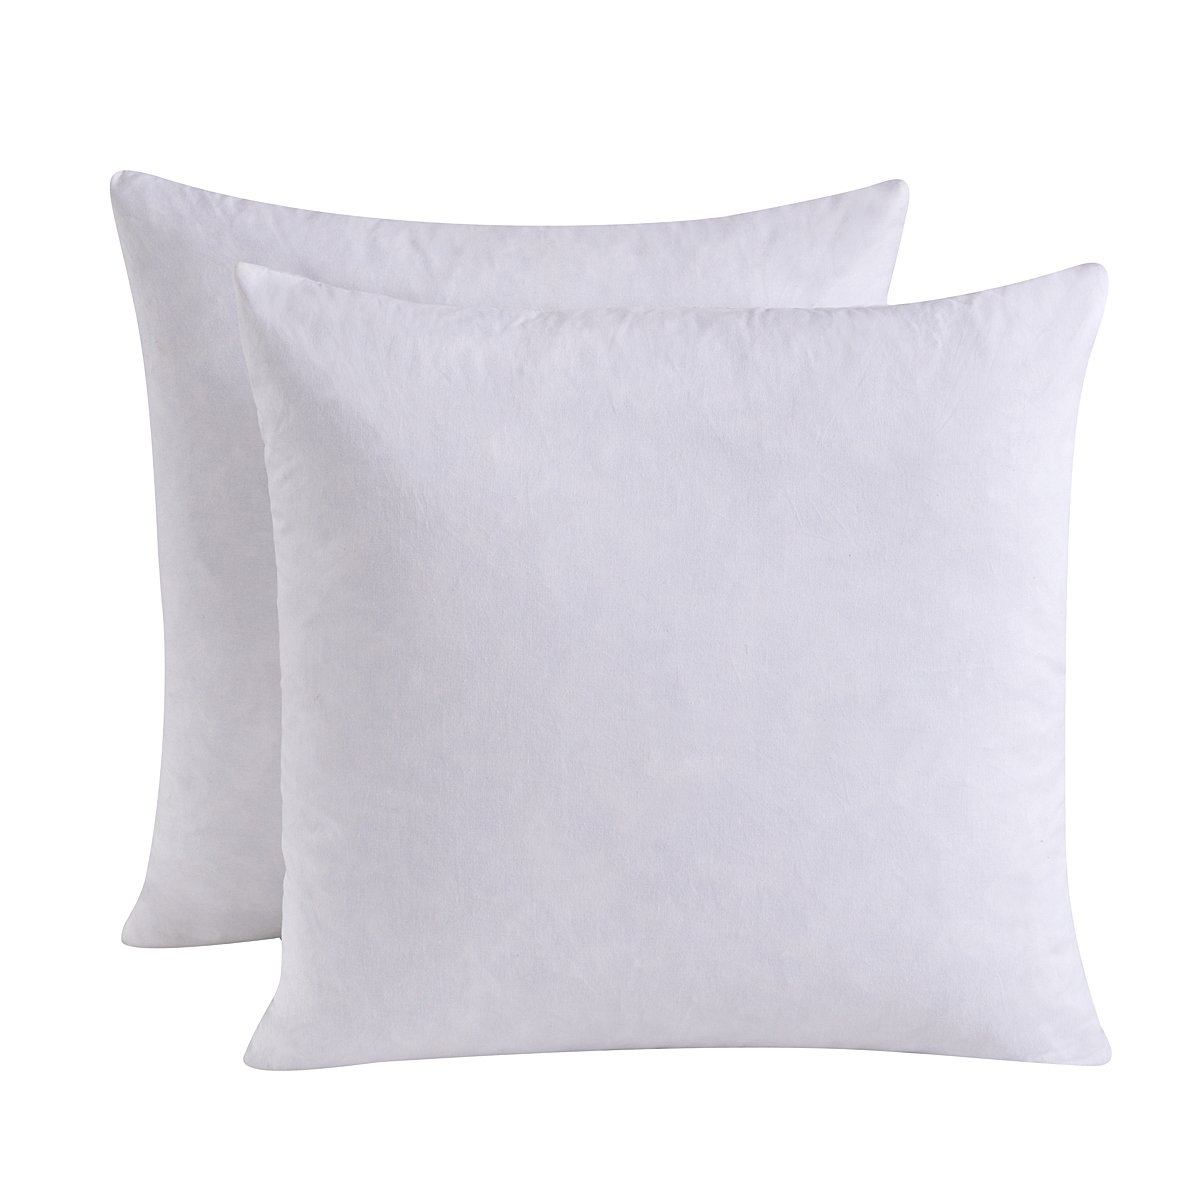 HOMESJUN Set of 2, 95% Feather 5% Down Square Decorative Throw Pillow Insert, 100% Cotton, 18x18 inch